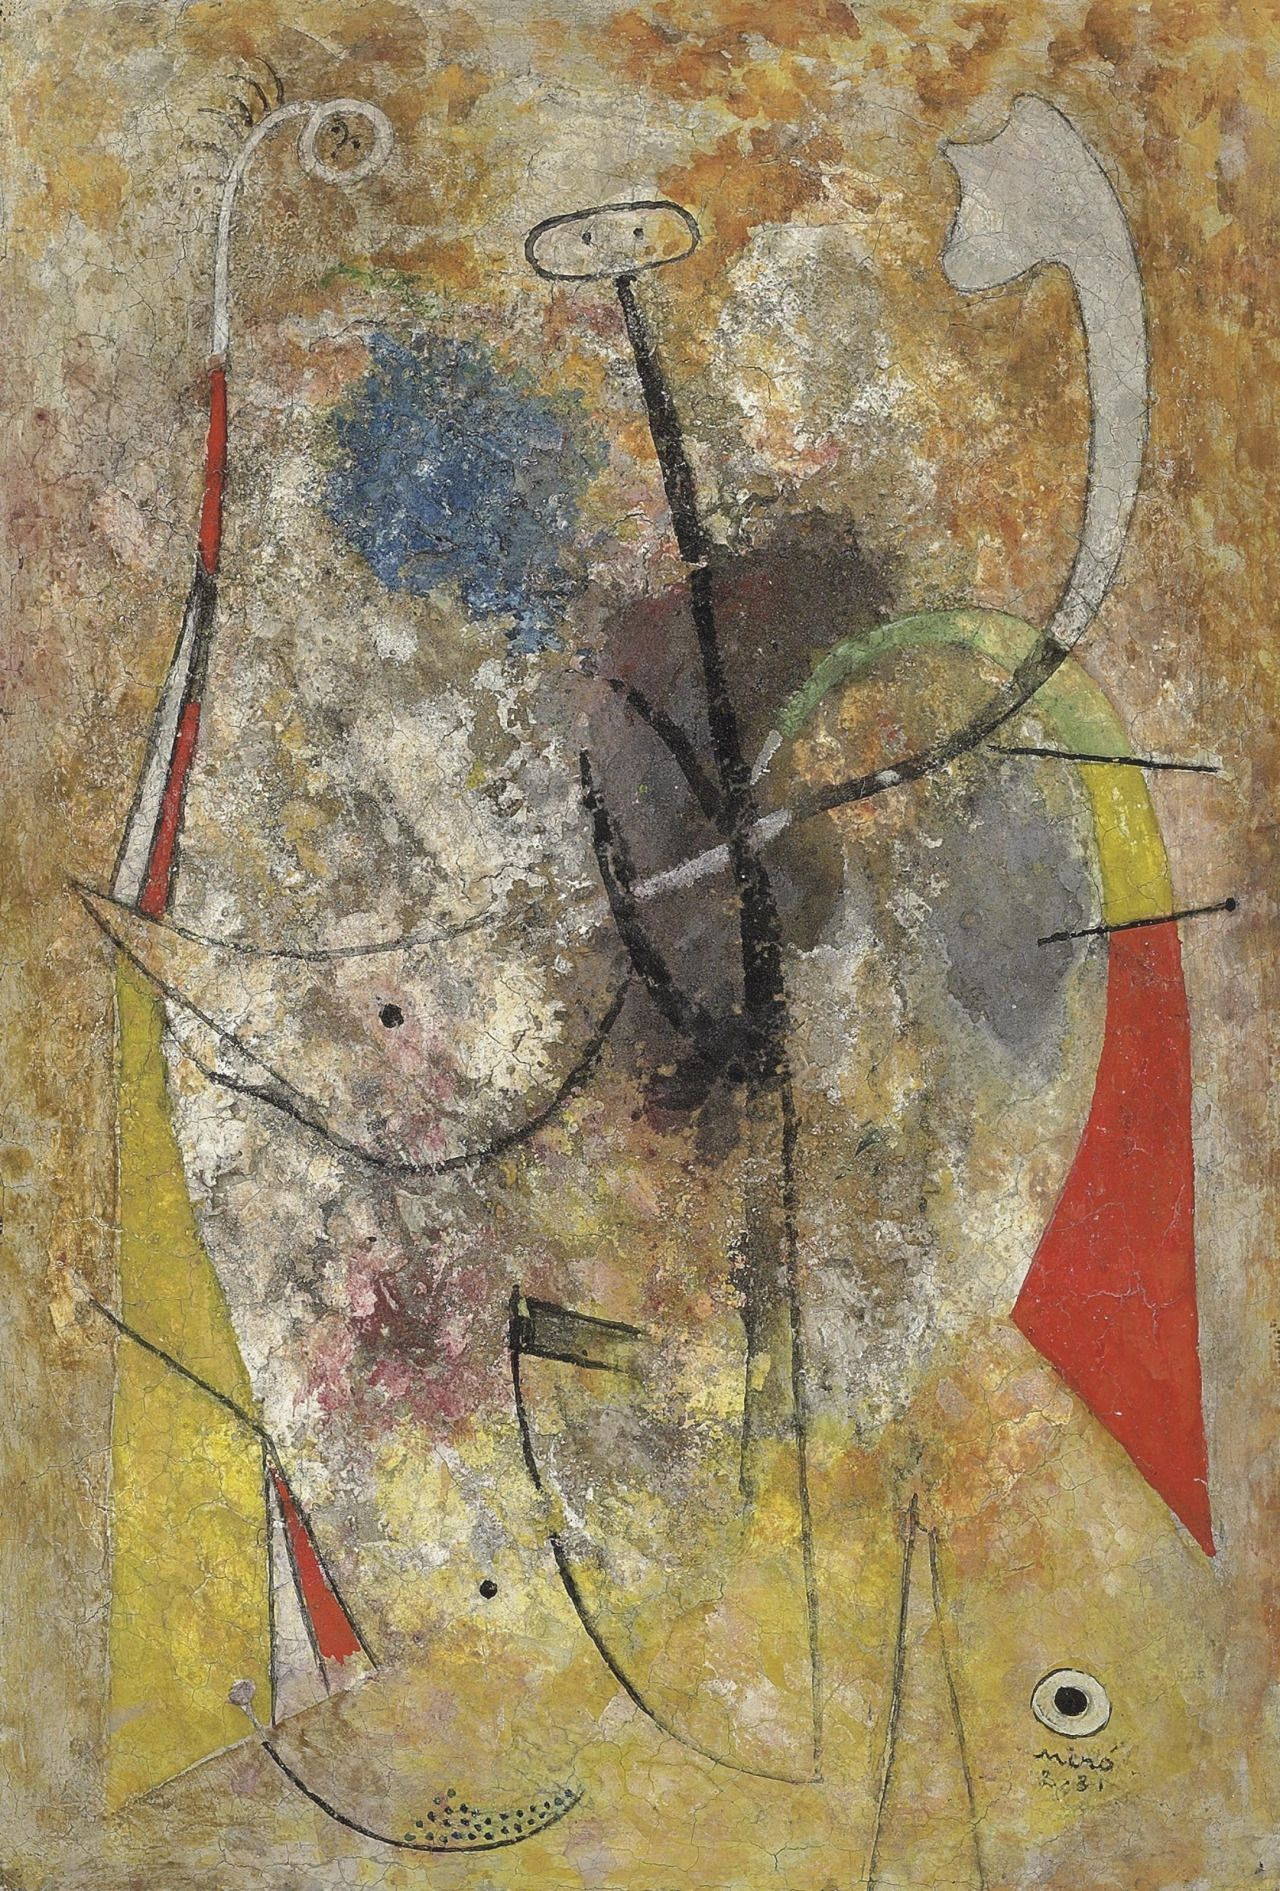 Joan Miró (1893-1983) Femmes, homme (February 1931)oil and sand on canvas 35 x 24 cm